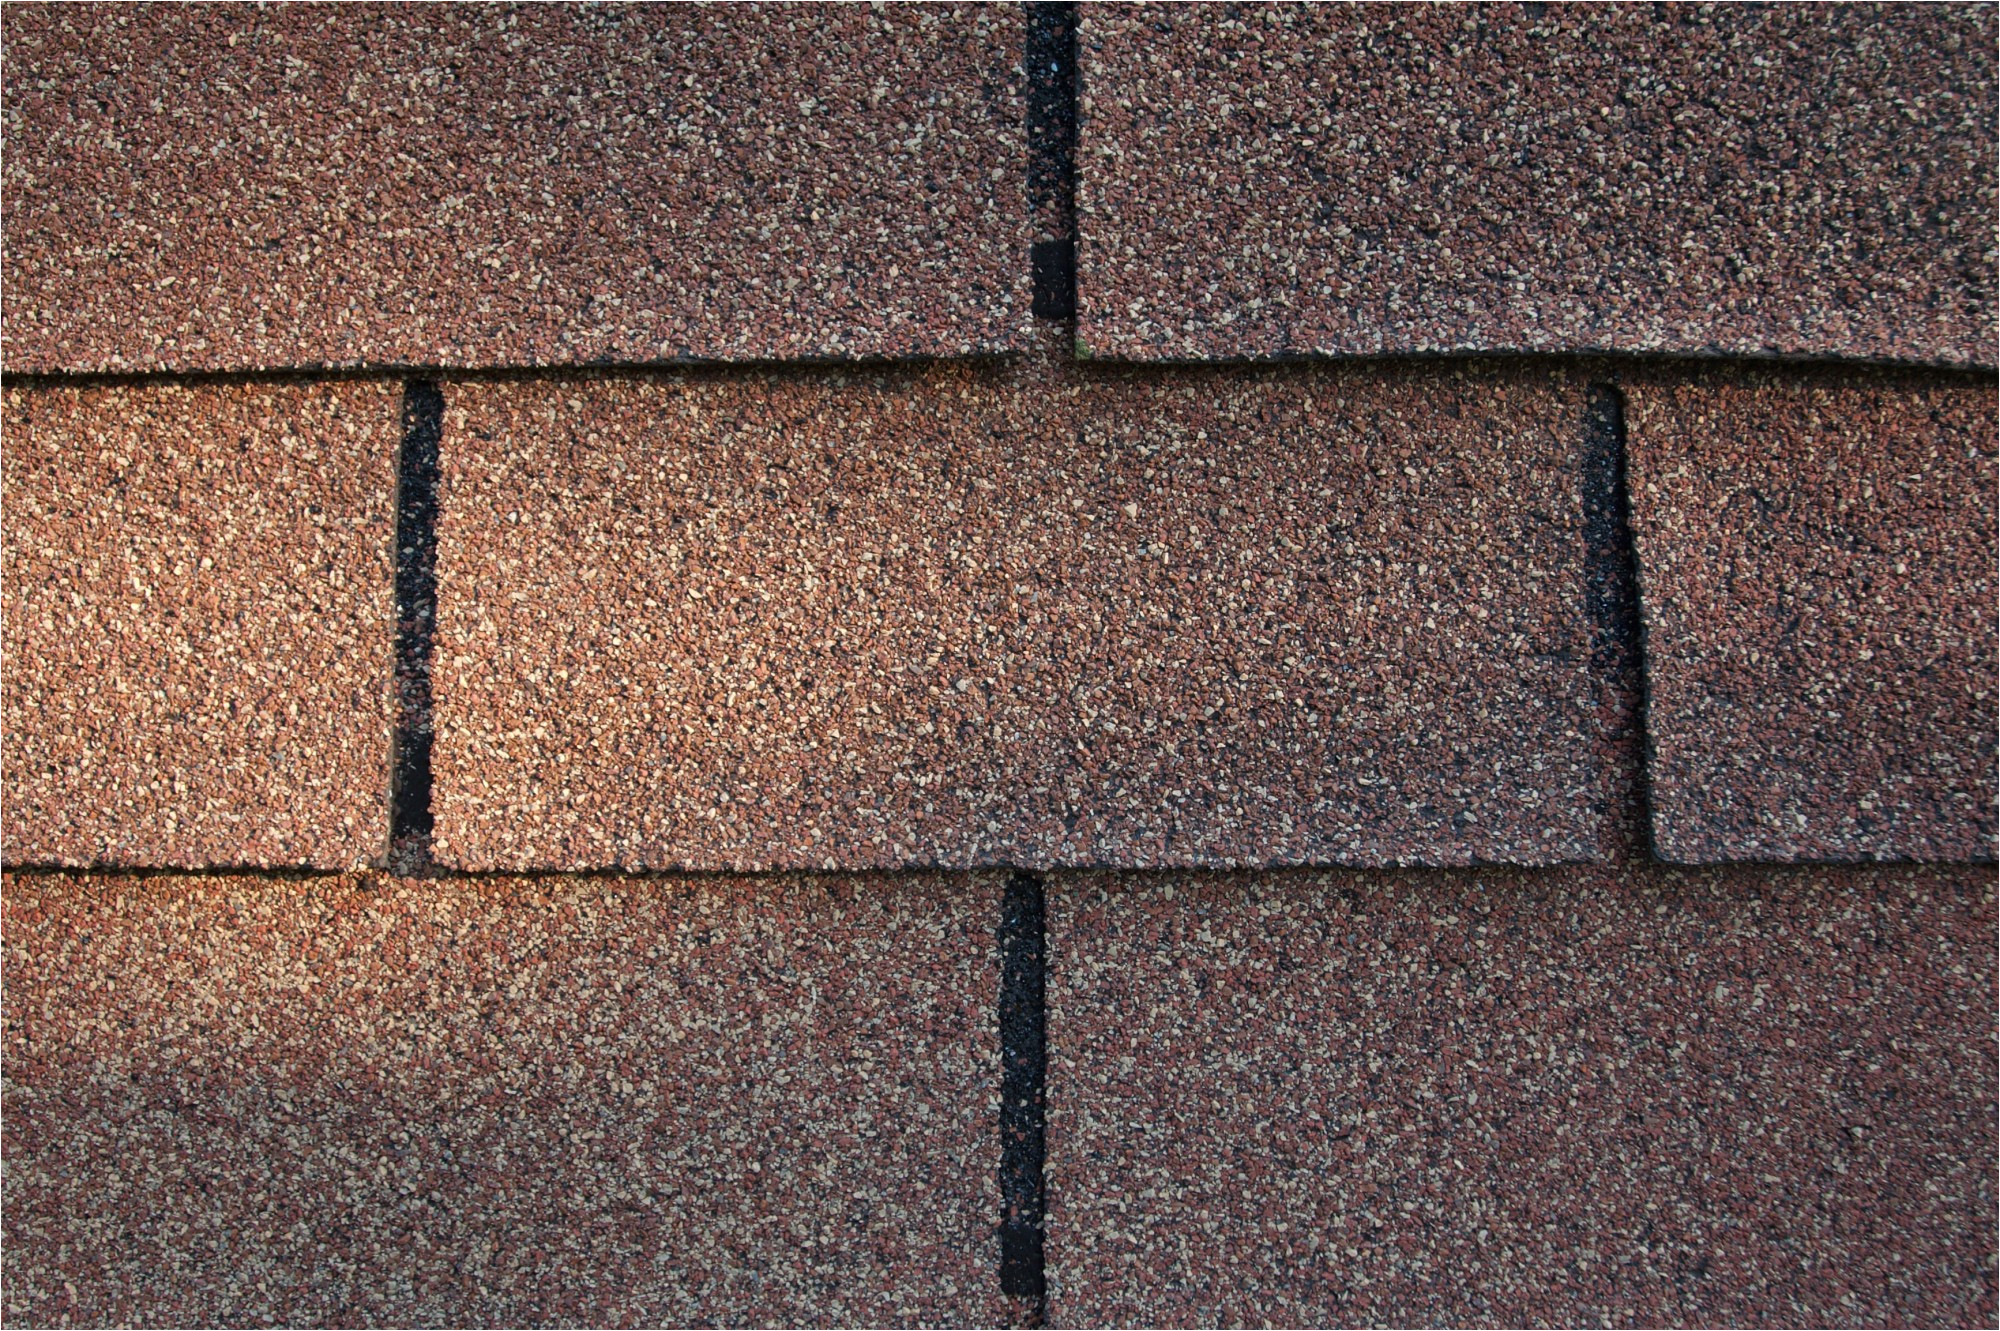 three tab asphalt shingle roofing in good condition